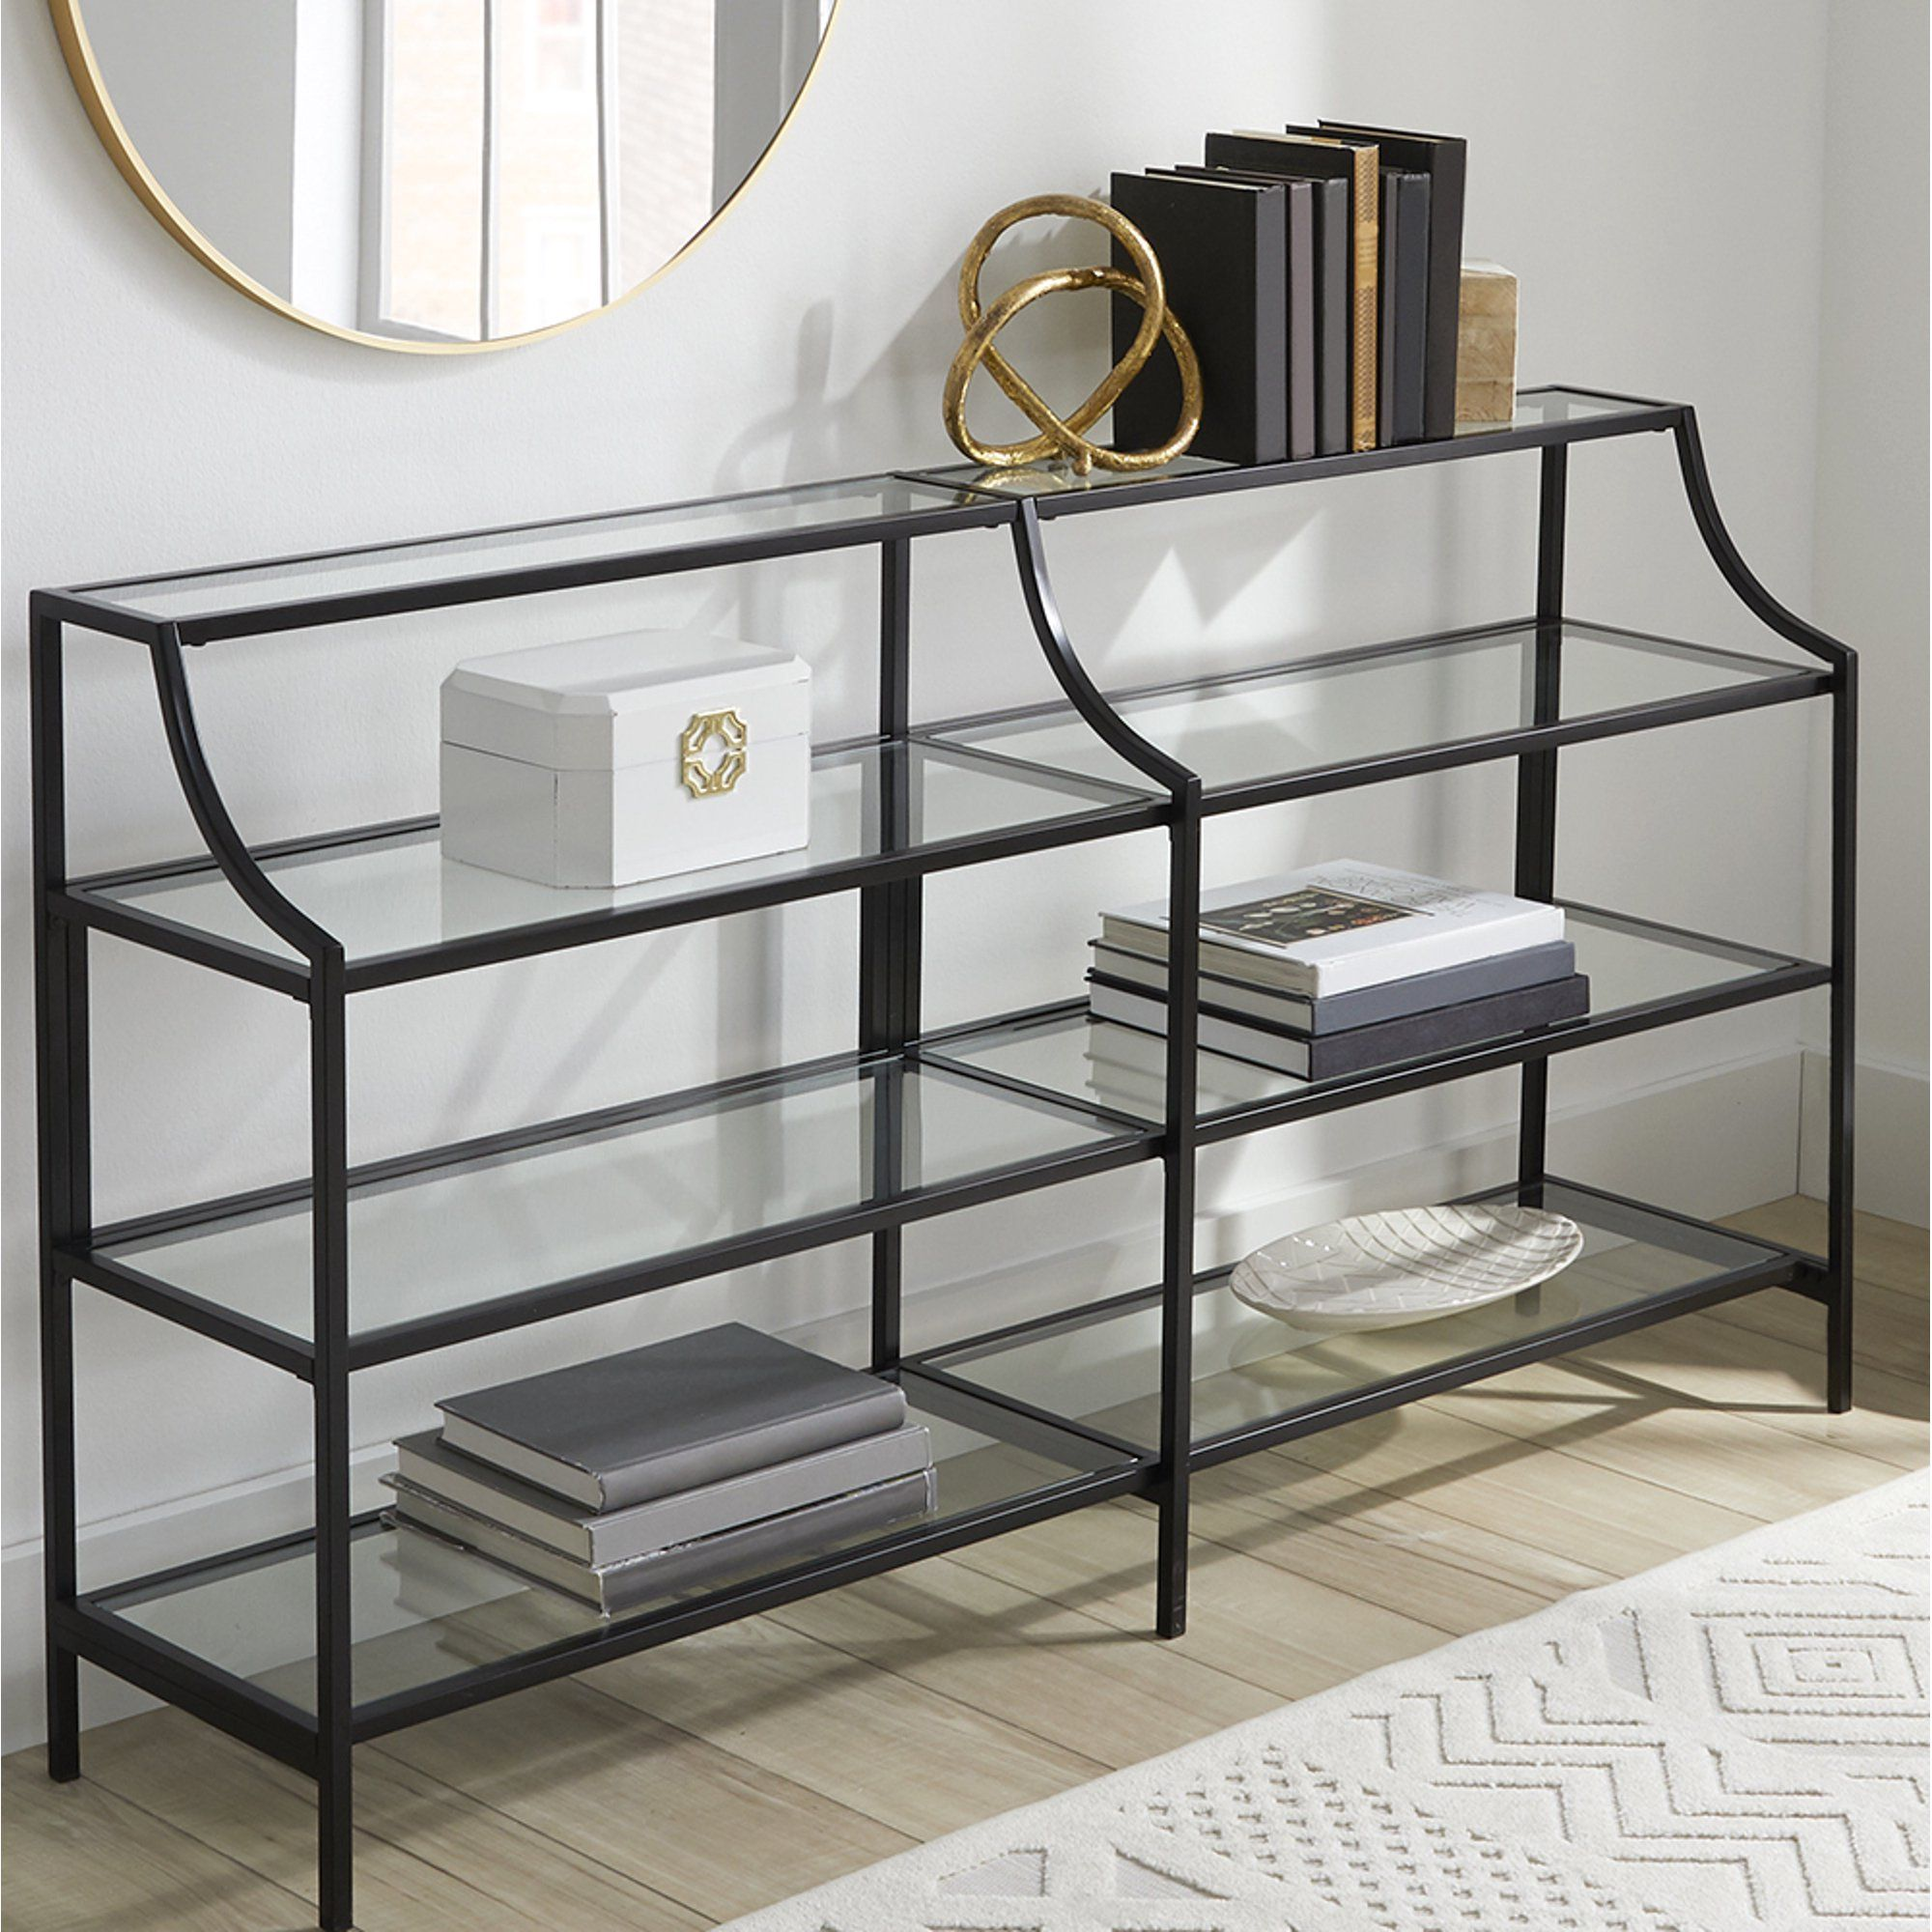 2beb458cee20a83fd3857348469af60c - Better Homes & Gardens Nola Coffee Table Black Finish